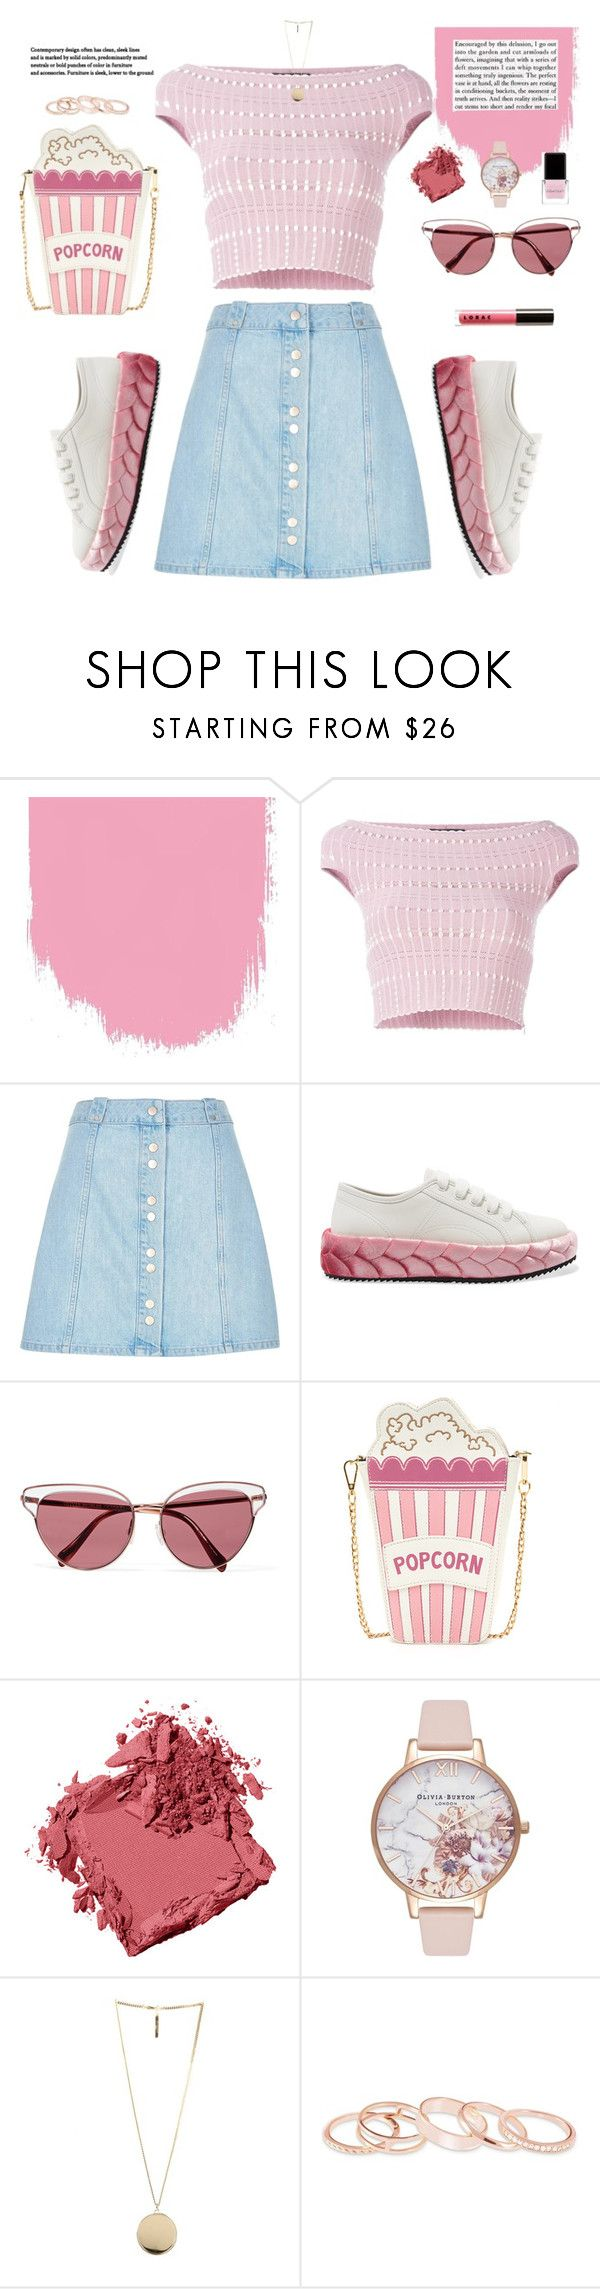 """Bsic"" by aangeles-mendoza ❤ liked on Polyvore featuring Alexander McQueen, River Island, Marco de Vincenzo, Oliver Peoples, LORAC, Bobbi Brown Cosmetics, Olivia Burton, Givenchy, Kendra Scott and Context"